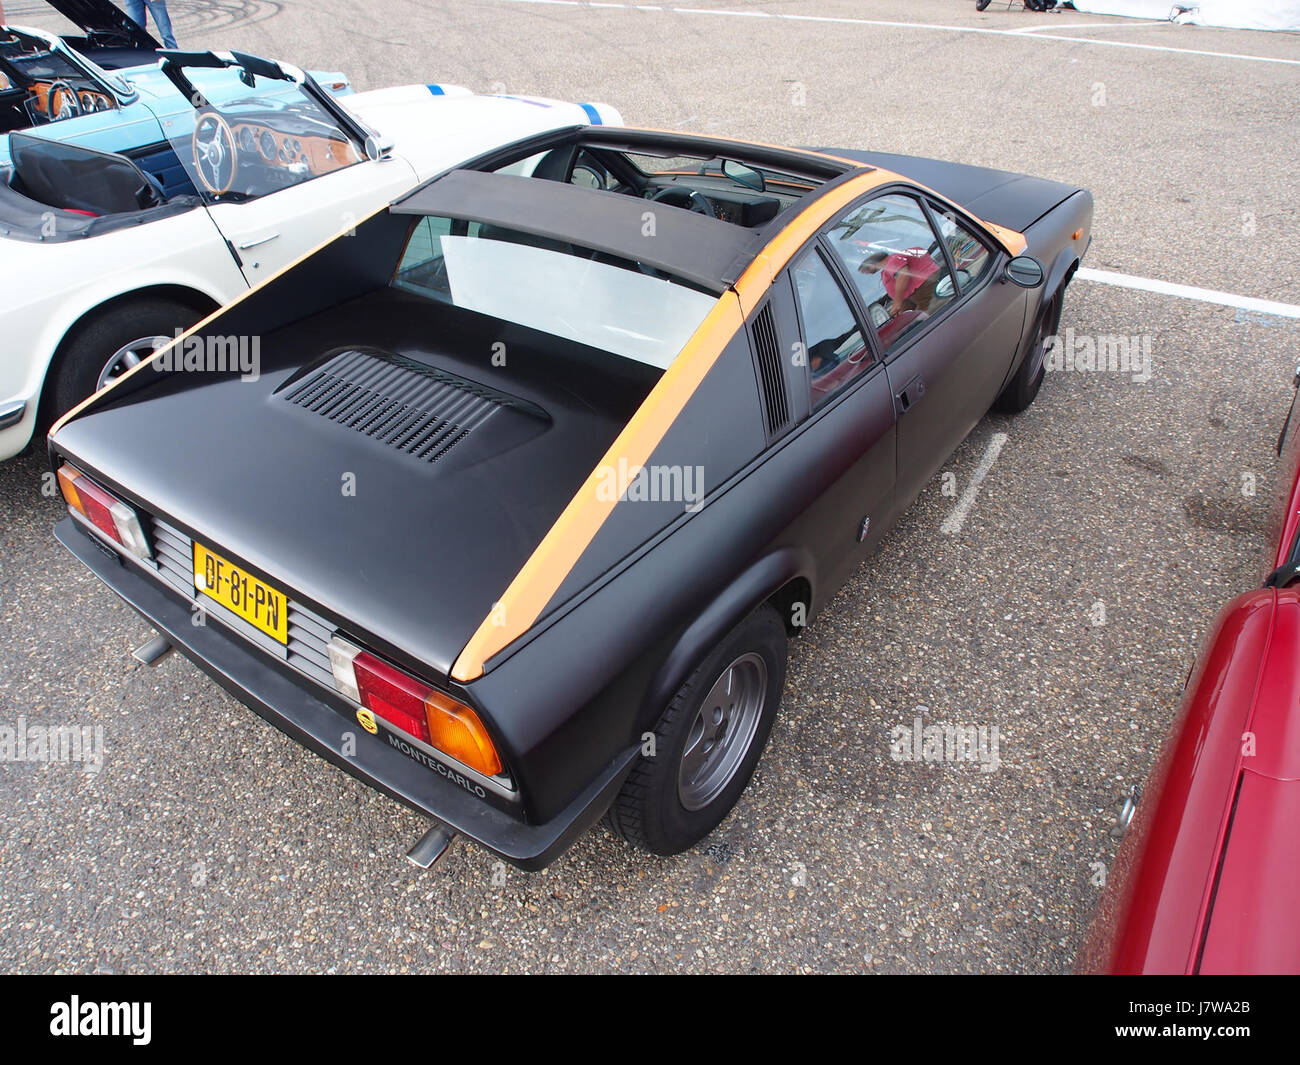 1978 lancia beta monte carlo pic1 stock photo: 142542243 - alamy